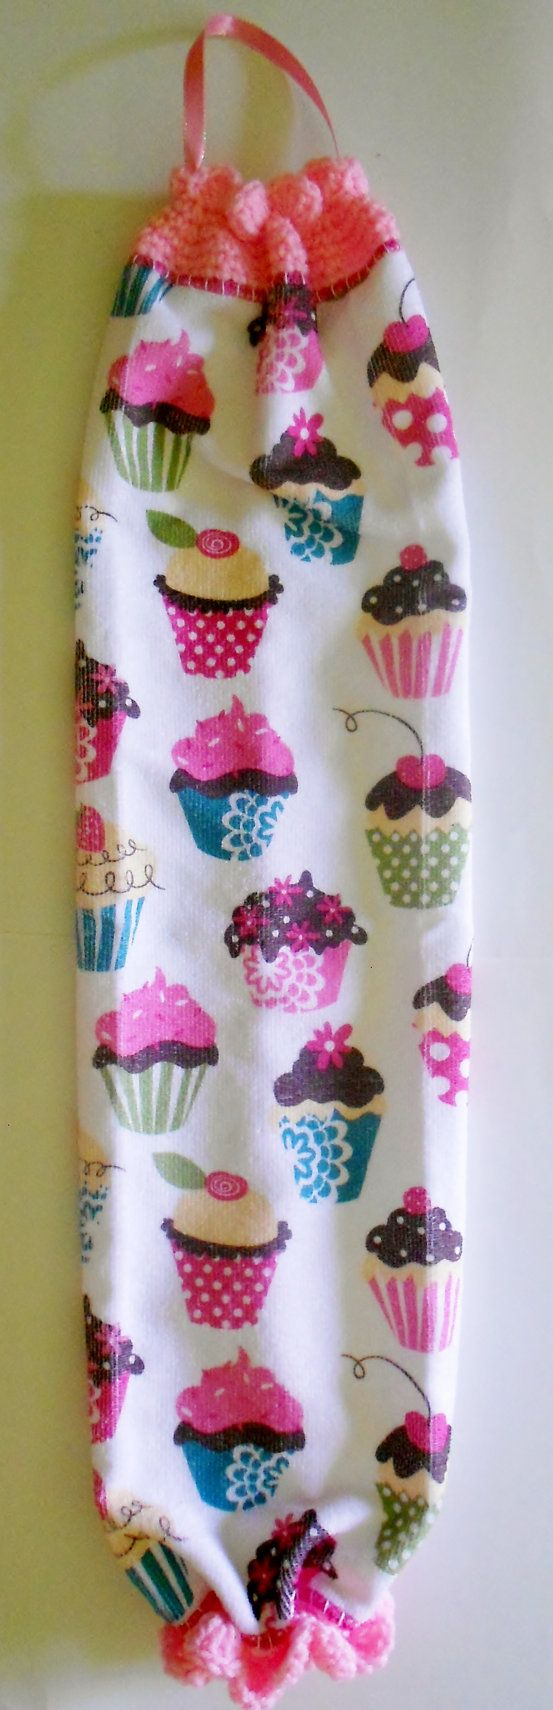 Hey, I found this really awesome Etsy listing at https://www.etsy.com/listing/157351299/bag-holder-cupcake-kitchen-decor-crochet